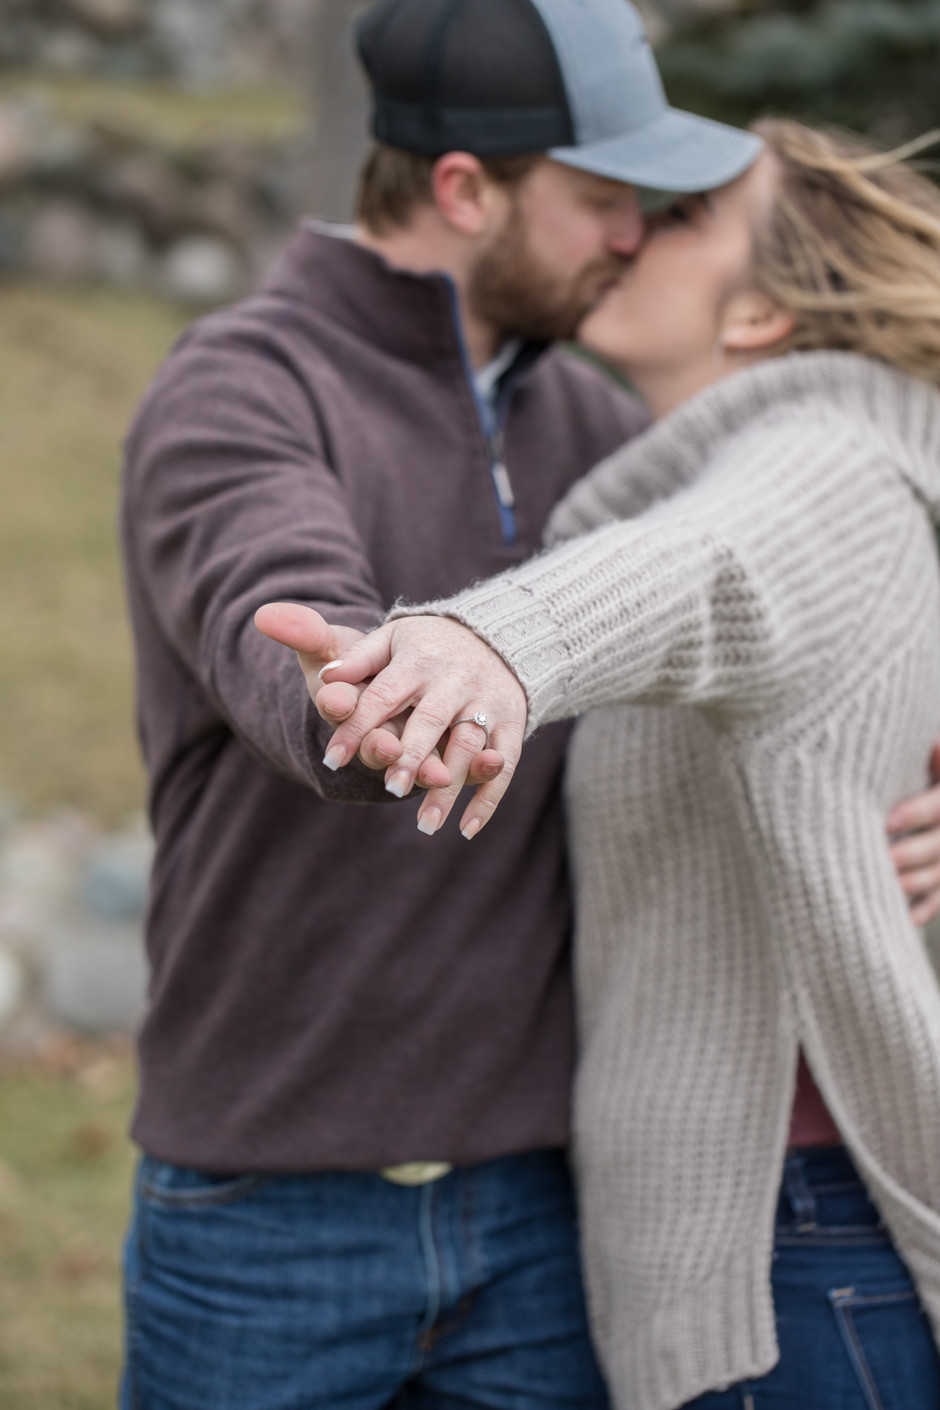 Kristy & Jared - A Holiday Engagement!